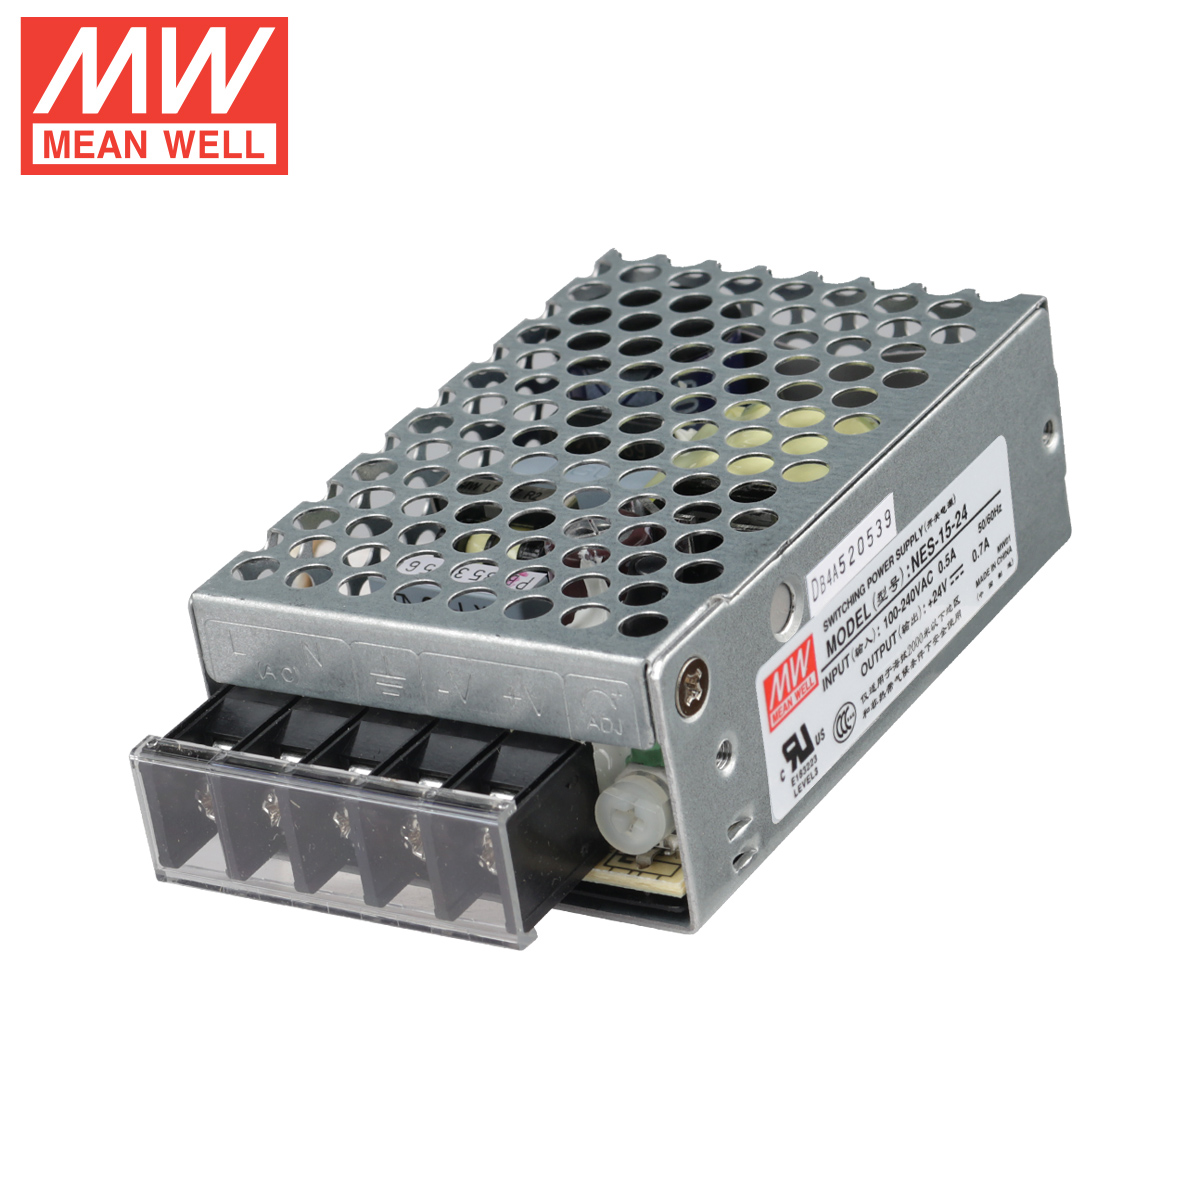 [Meanwell authorized total generation] genuine taiwan meanwell switching power supply nes-15-24 15 w 24 v 0.7a